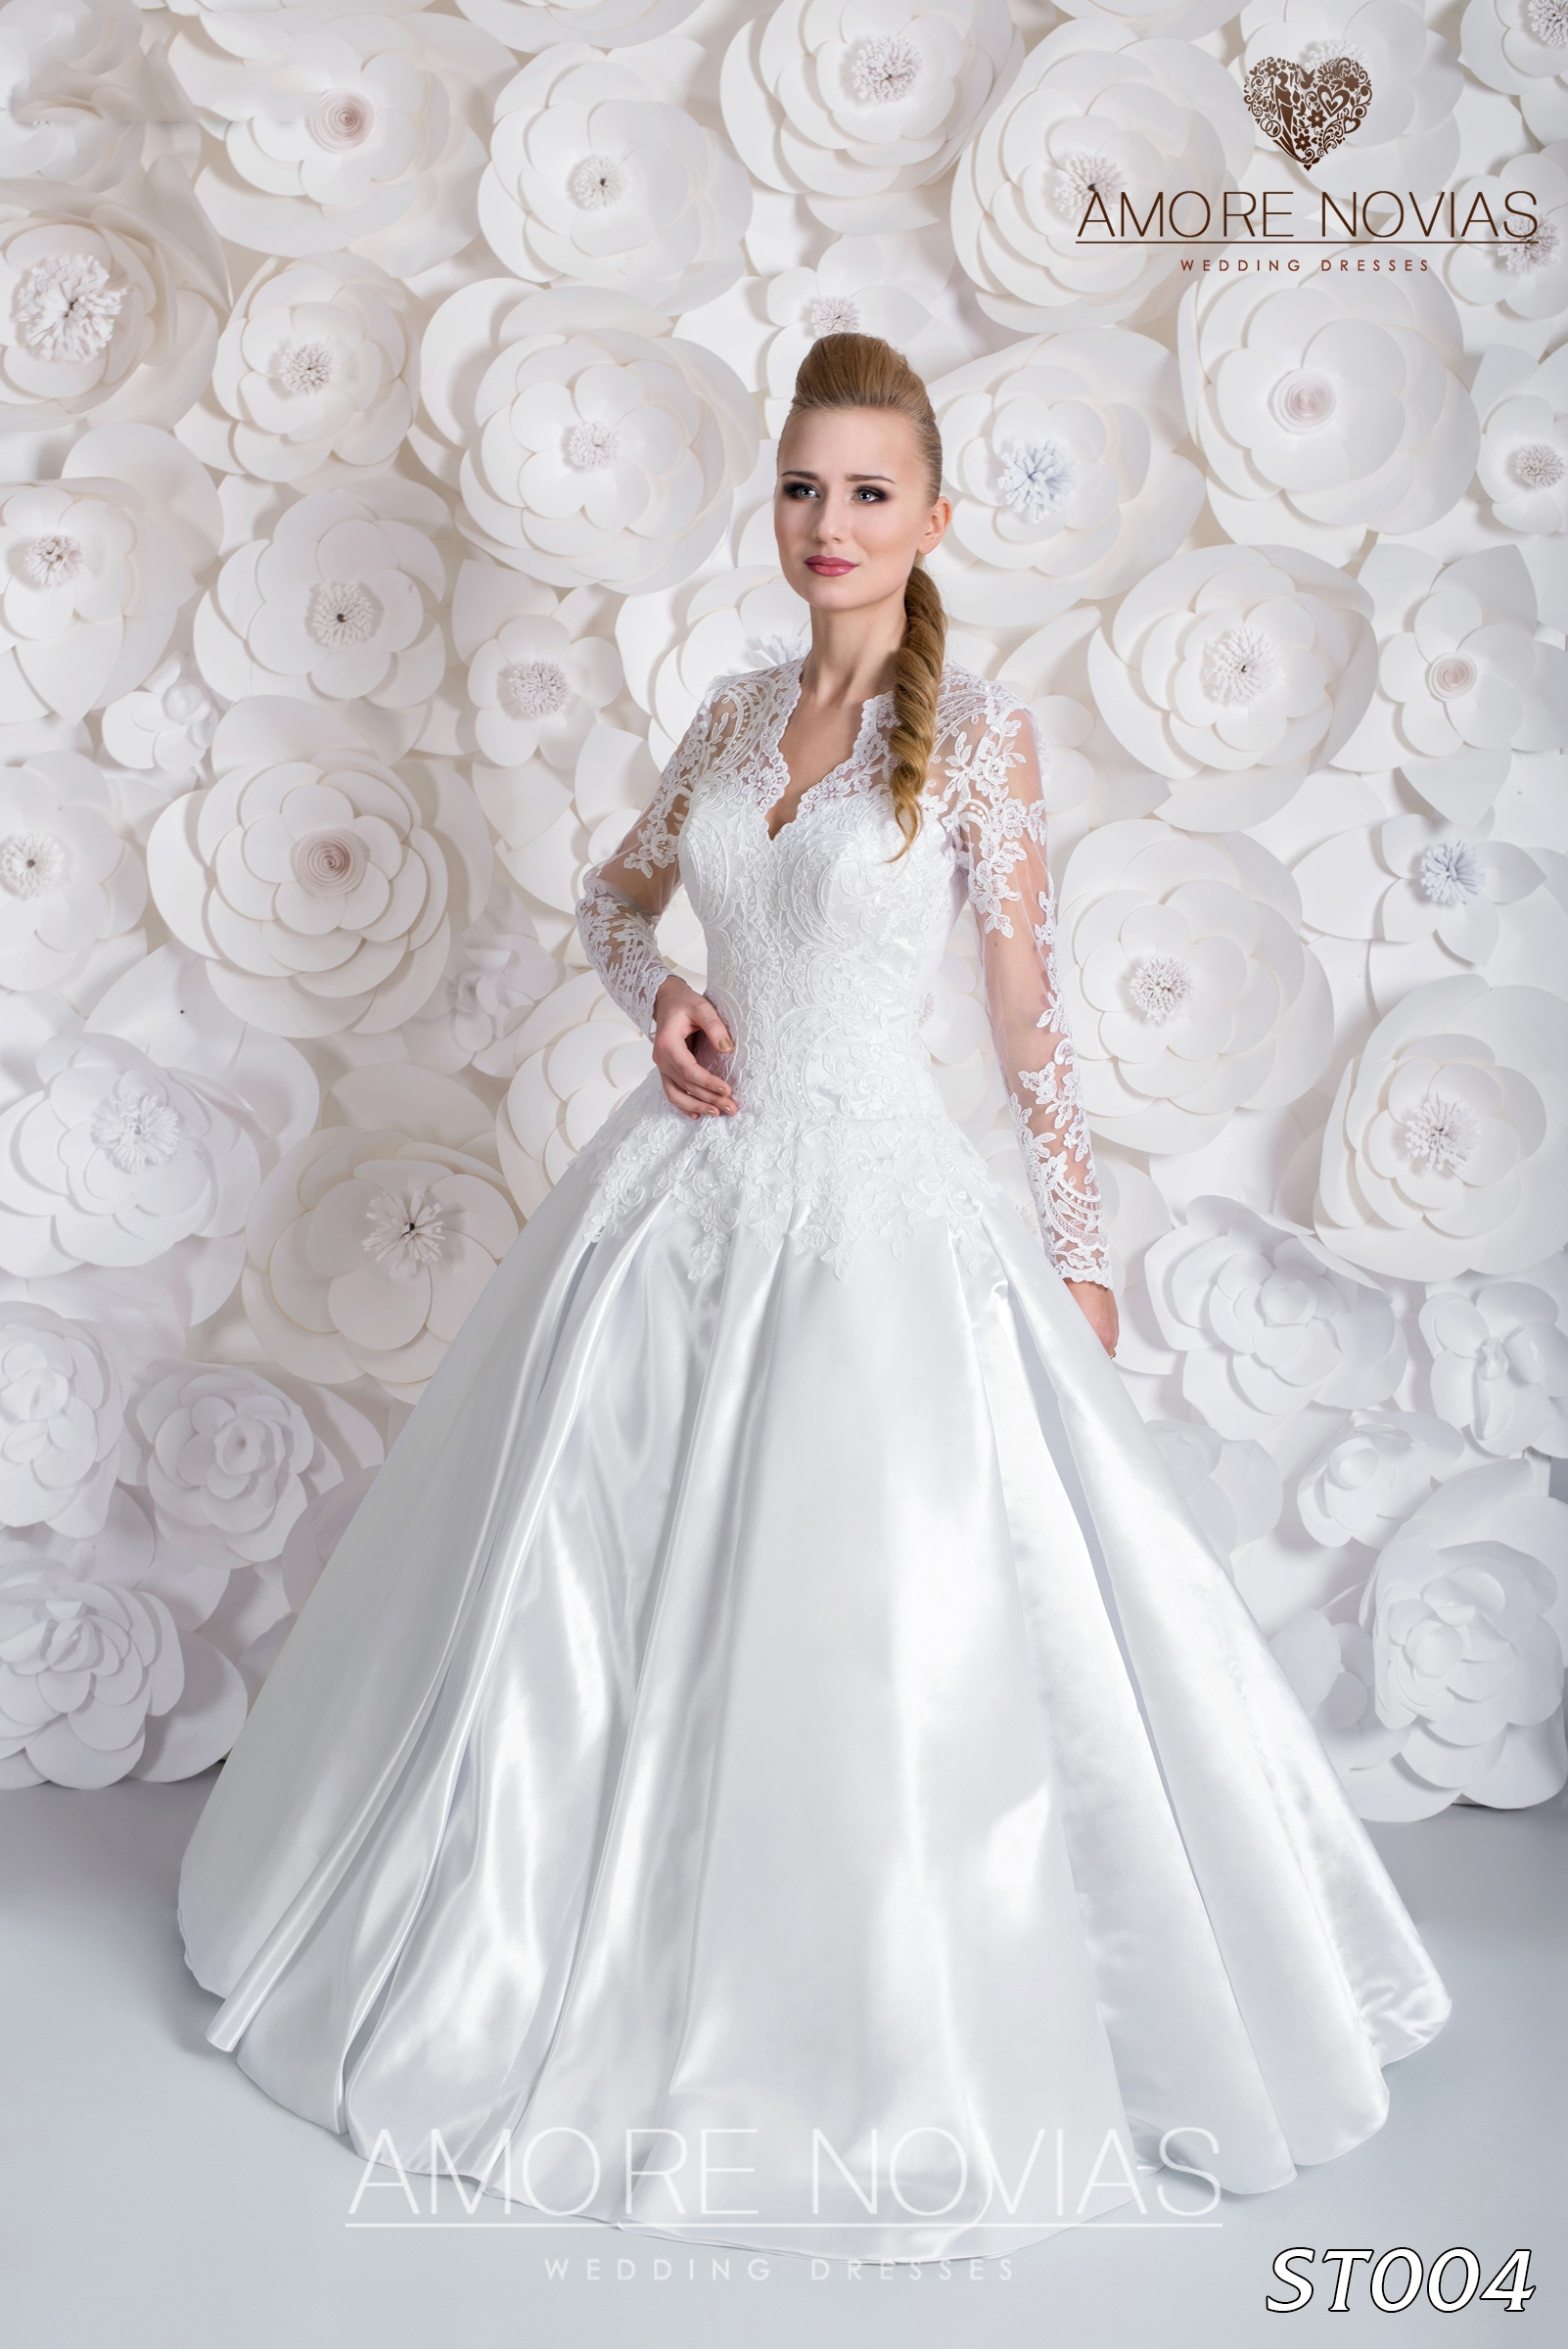 http://amore-novias.com/images/stories/virtuemart/product/st004.jpg